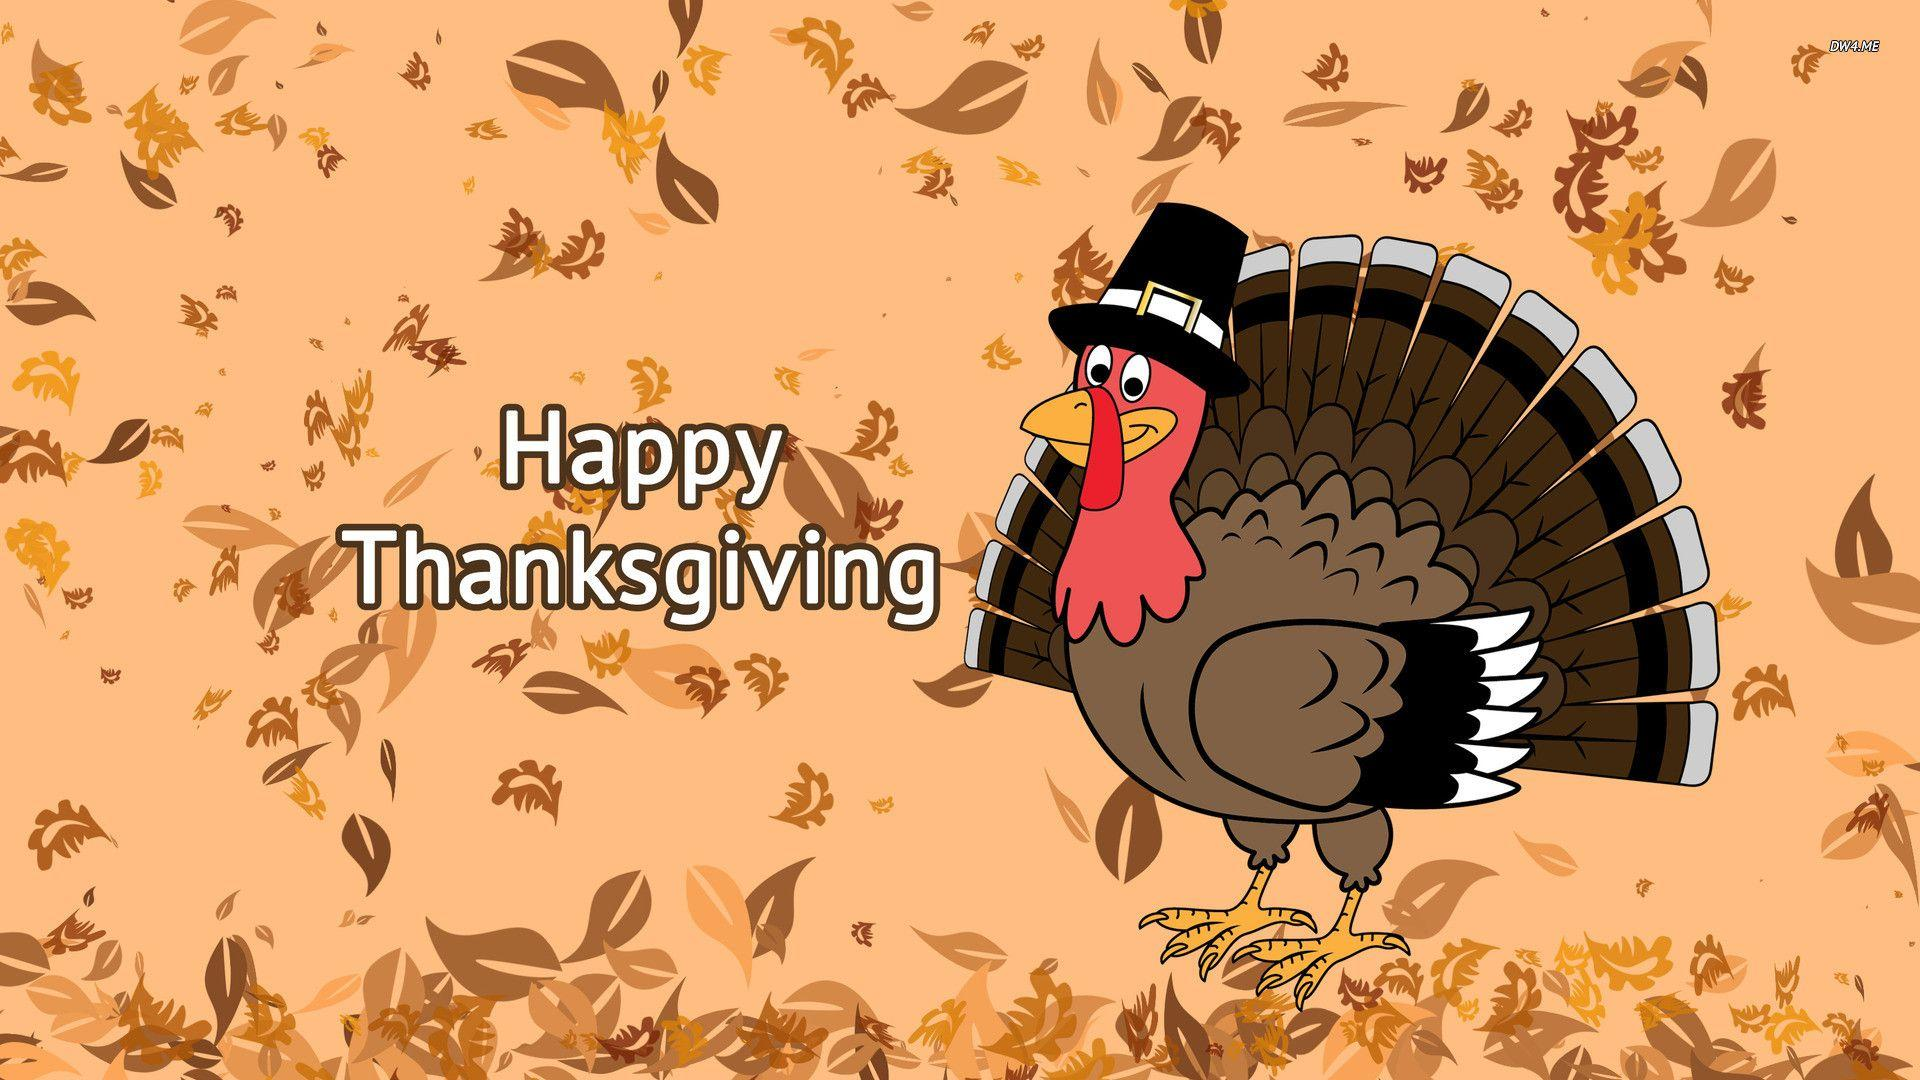 thanksgiving wallpapers for windows 7 - photo #33